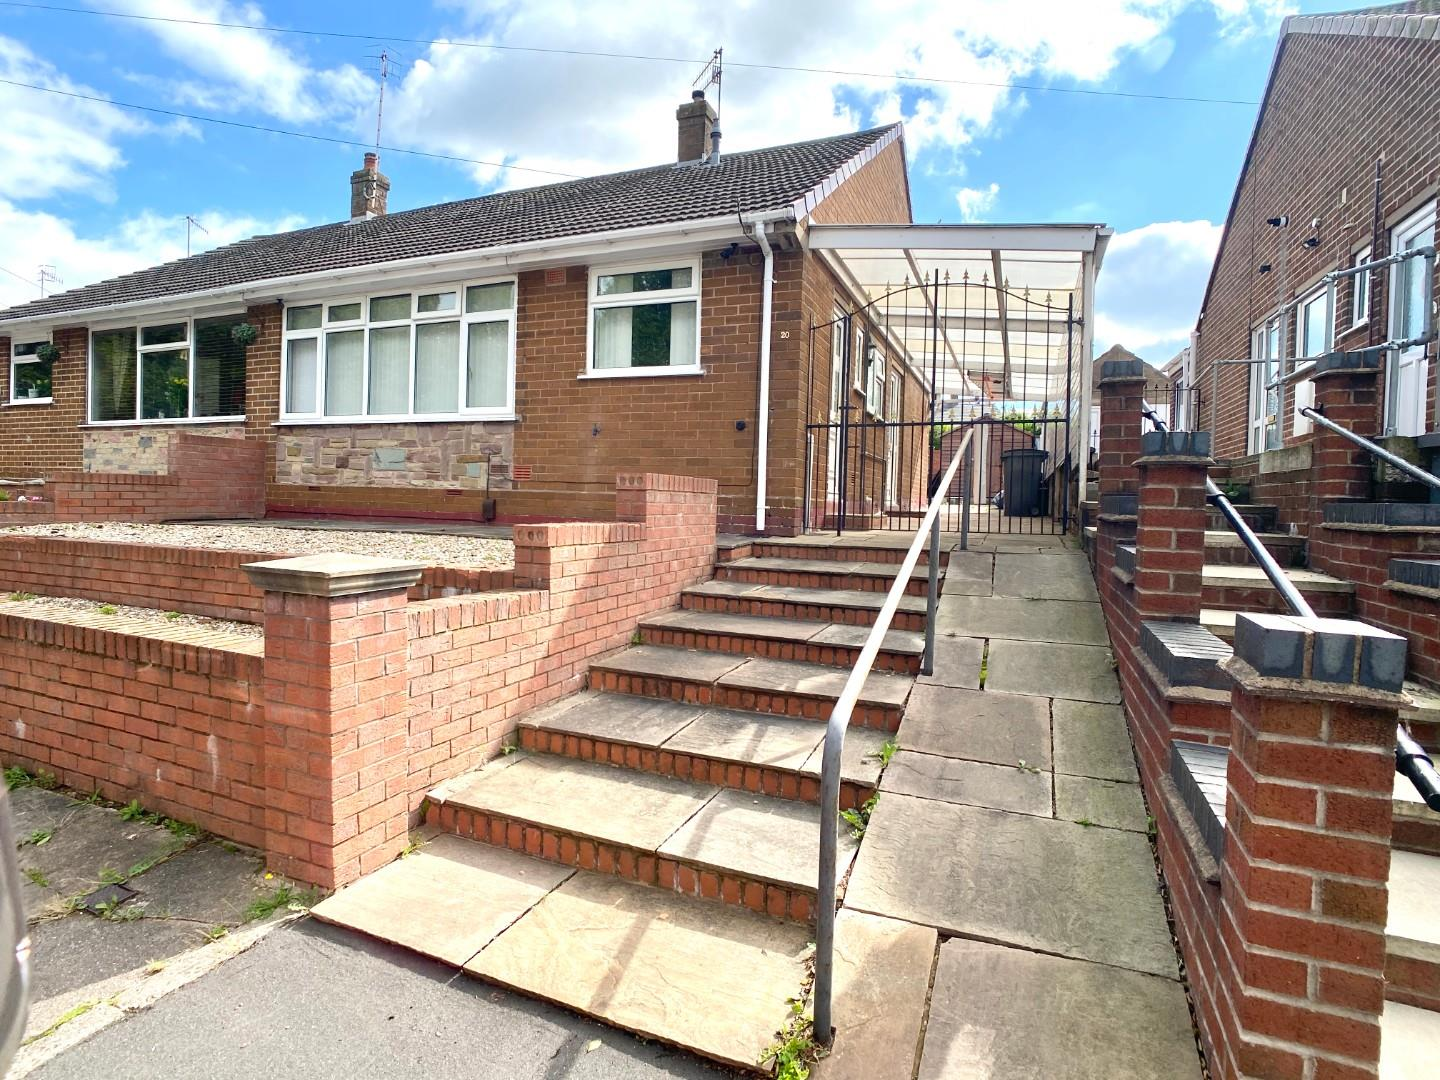 2 bed semi-detached bungalow for sale in Danehill Grove, Staffordshire - Property Image 1